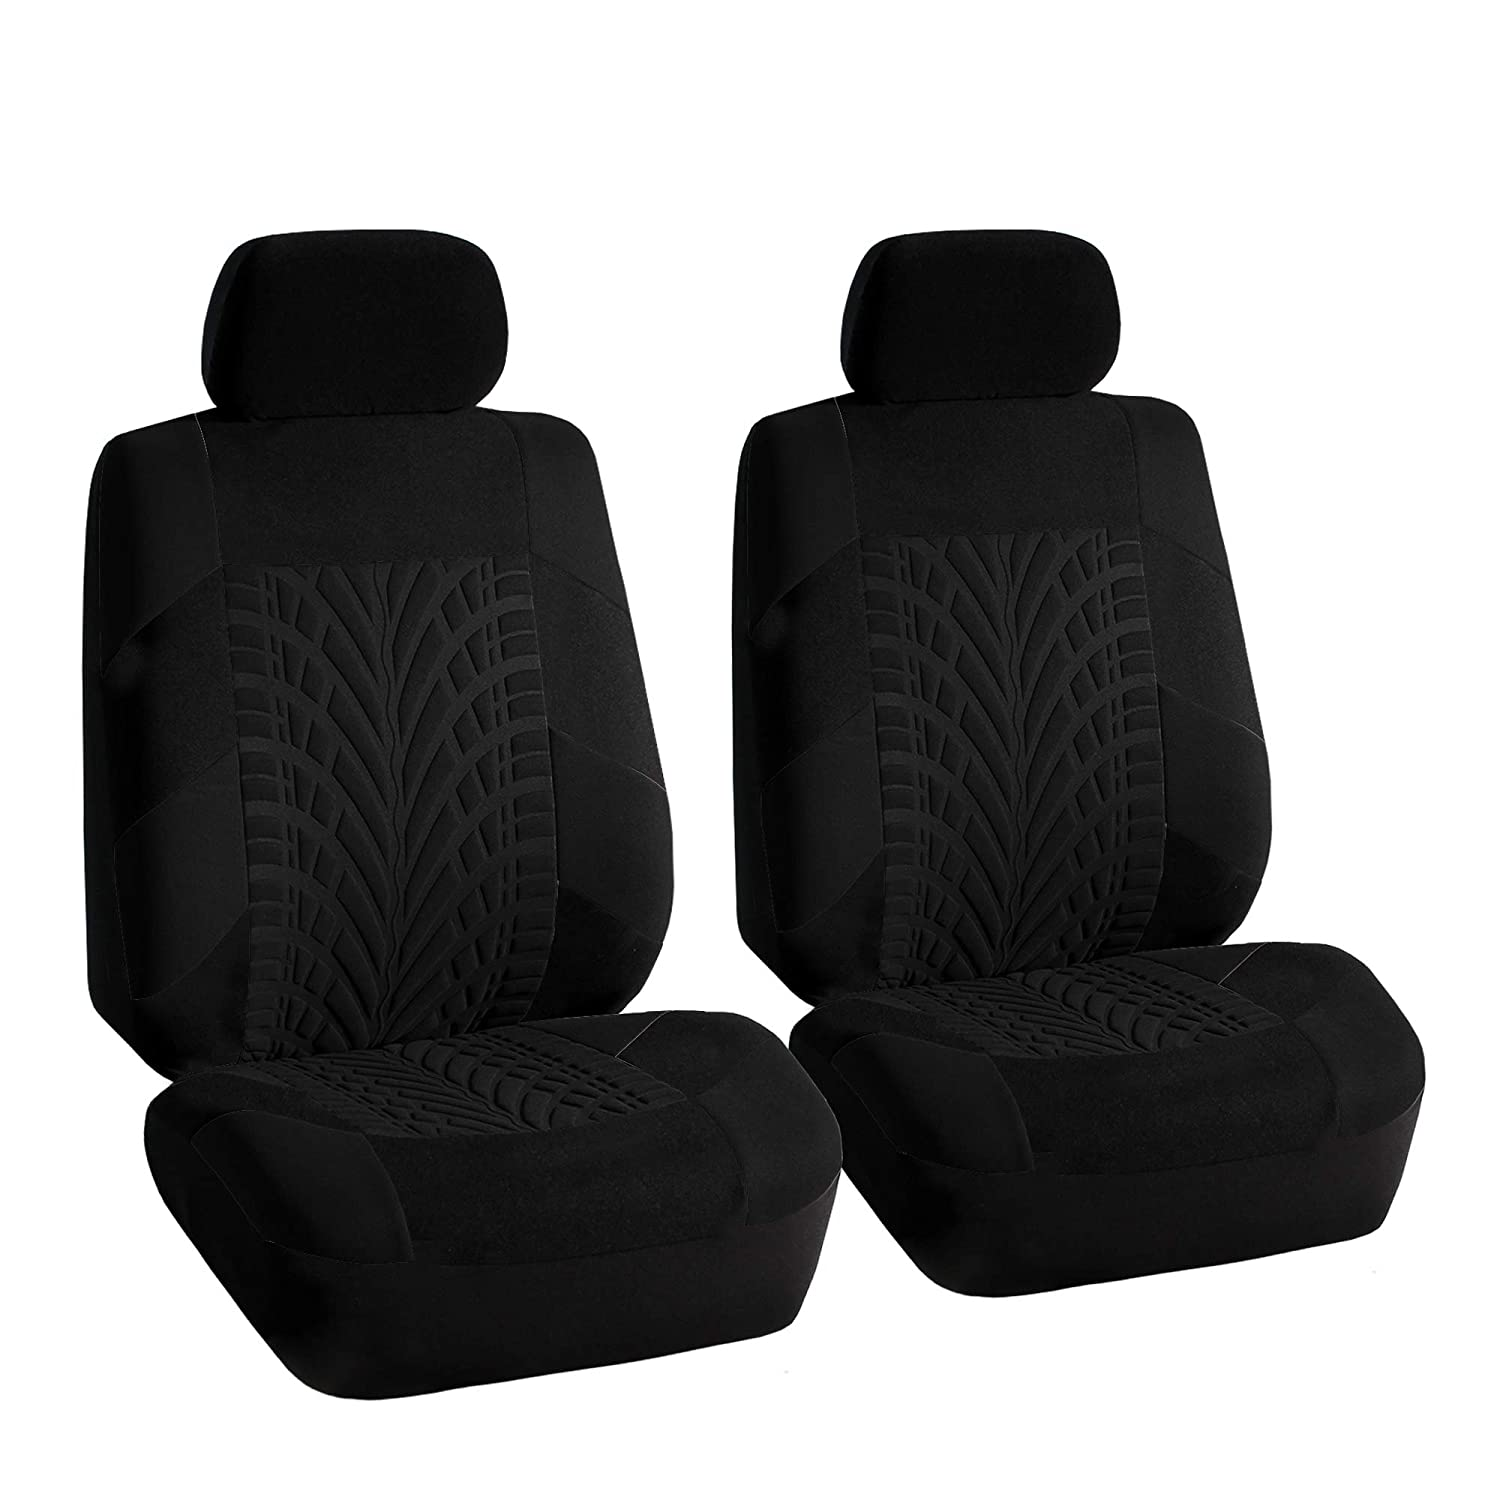 Travel Master Airbag and Split Bench Compatible Black FH Group FB071BLACK115 Car Seat Cover